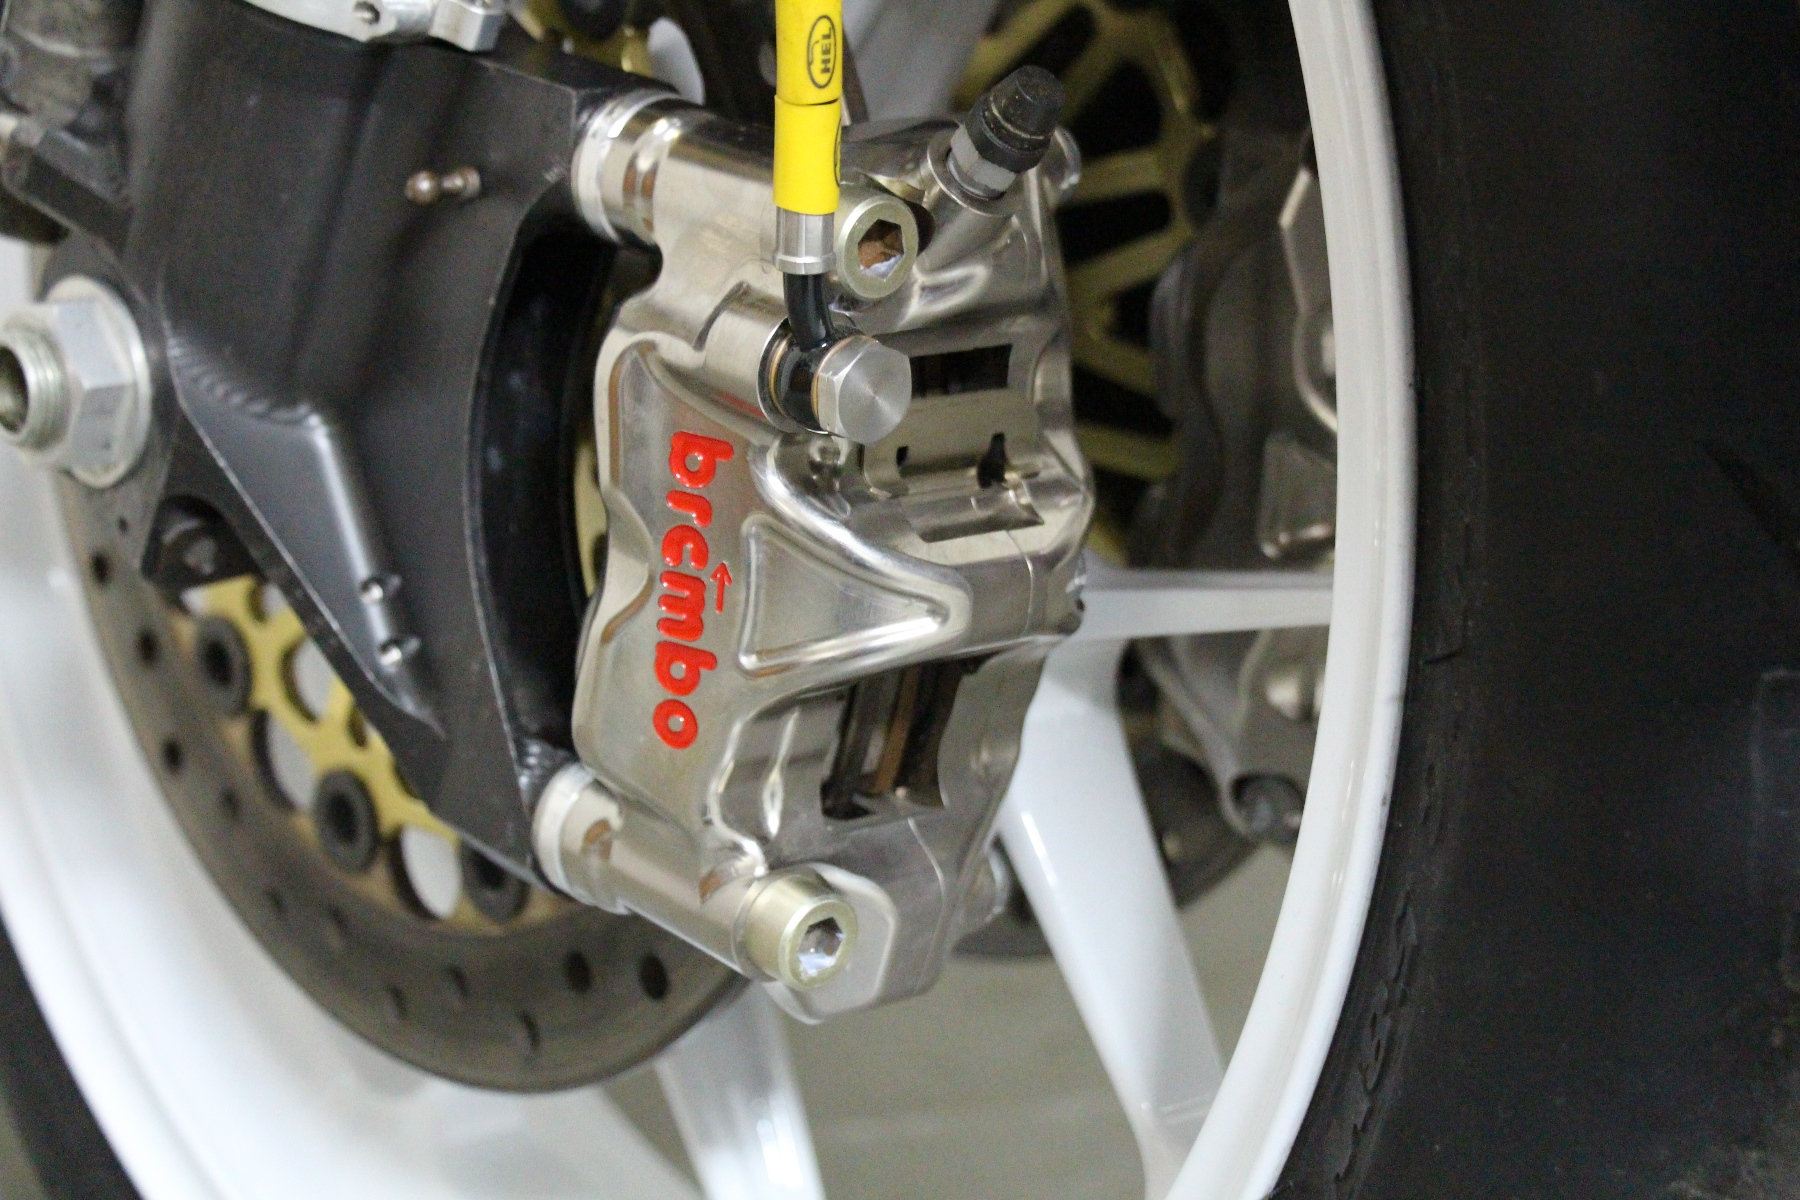 Tyga Street Nx 5 Rs250r S Performance Klx 250 Wiring Diagram Needless To Say On A 100kg Bike The Brakes Are More Than Sufficient Rear Shock Is Ohlins But Other That Chassis